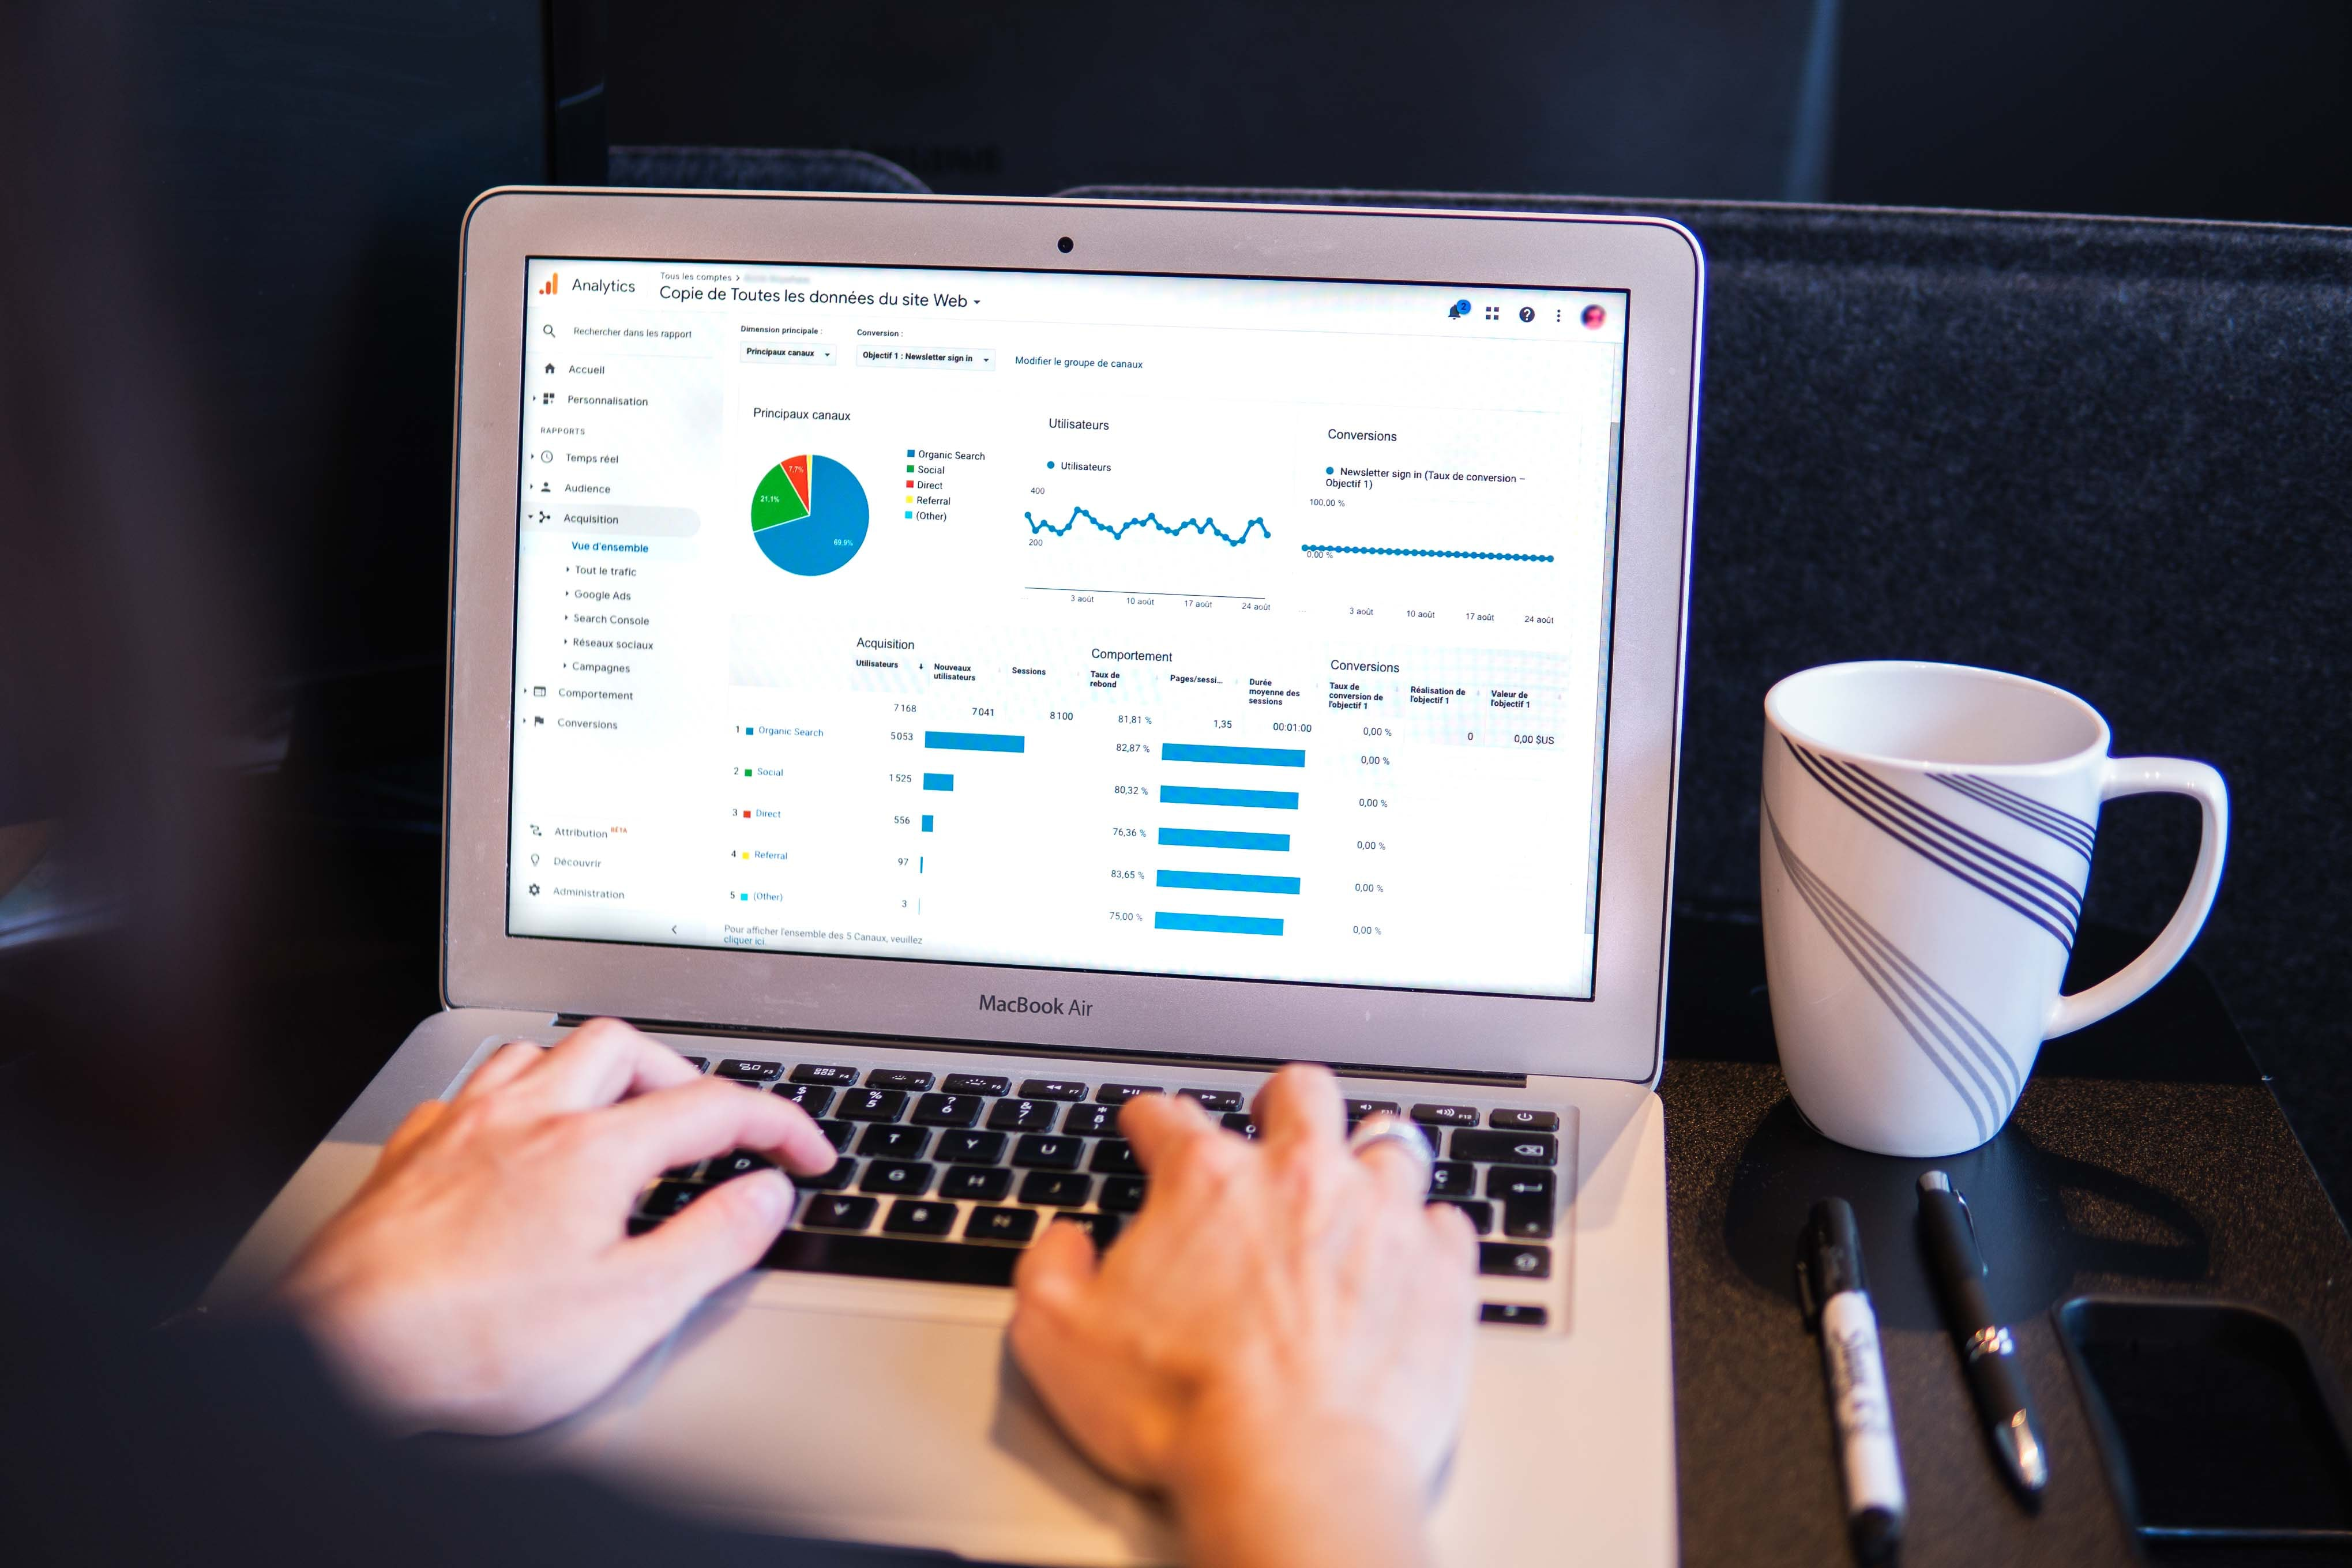 How an Adwords campaign can boost your organizations searchability